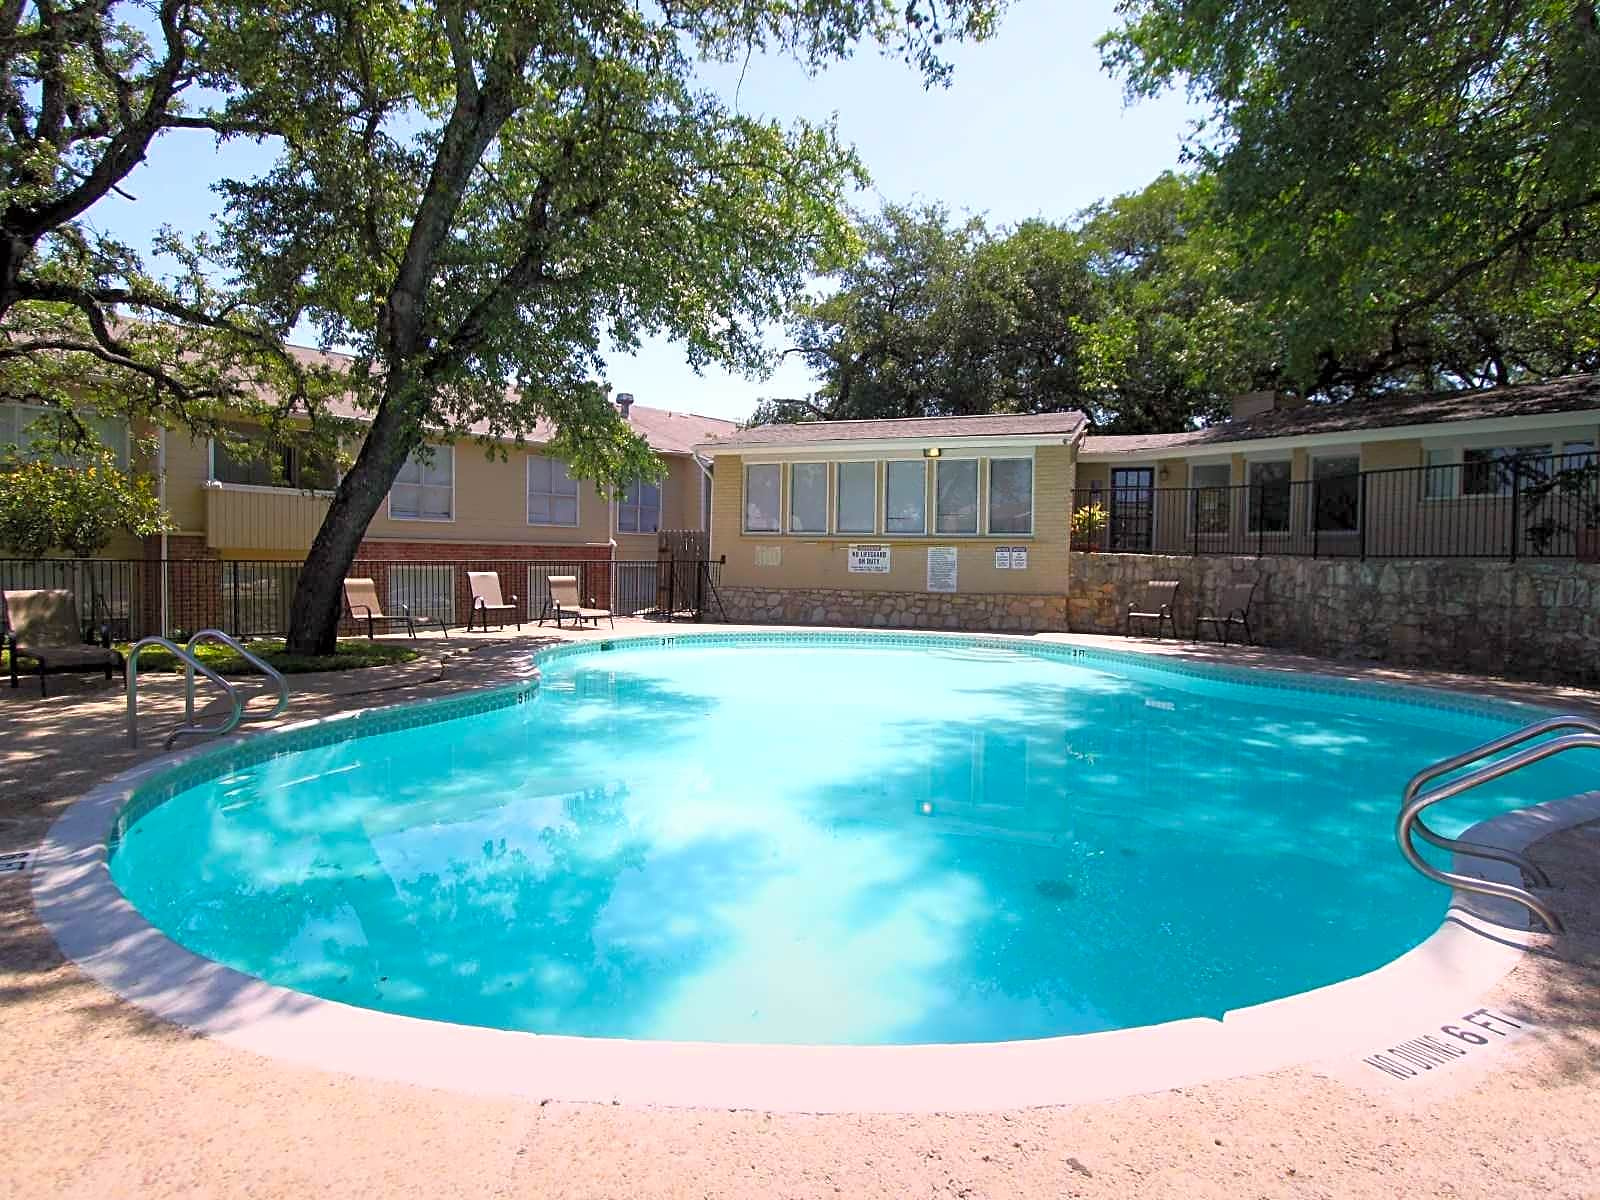 Photo: San Antonio Apartment for Rent - $575.00 / month; 1 Bd & 1 Ba